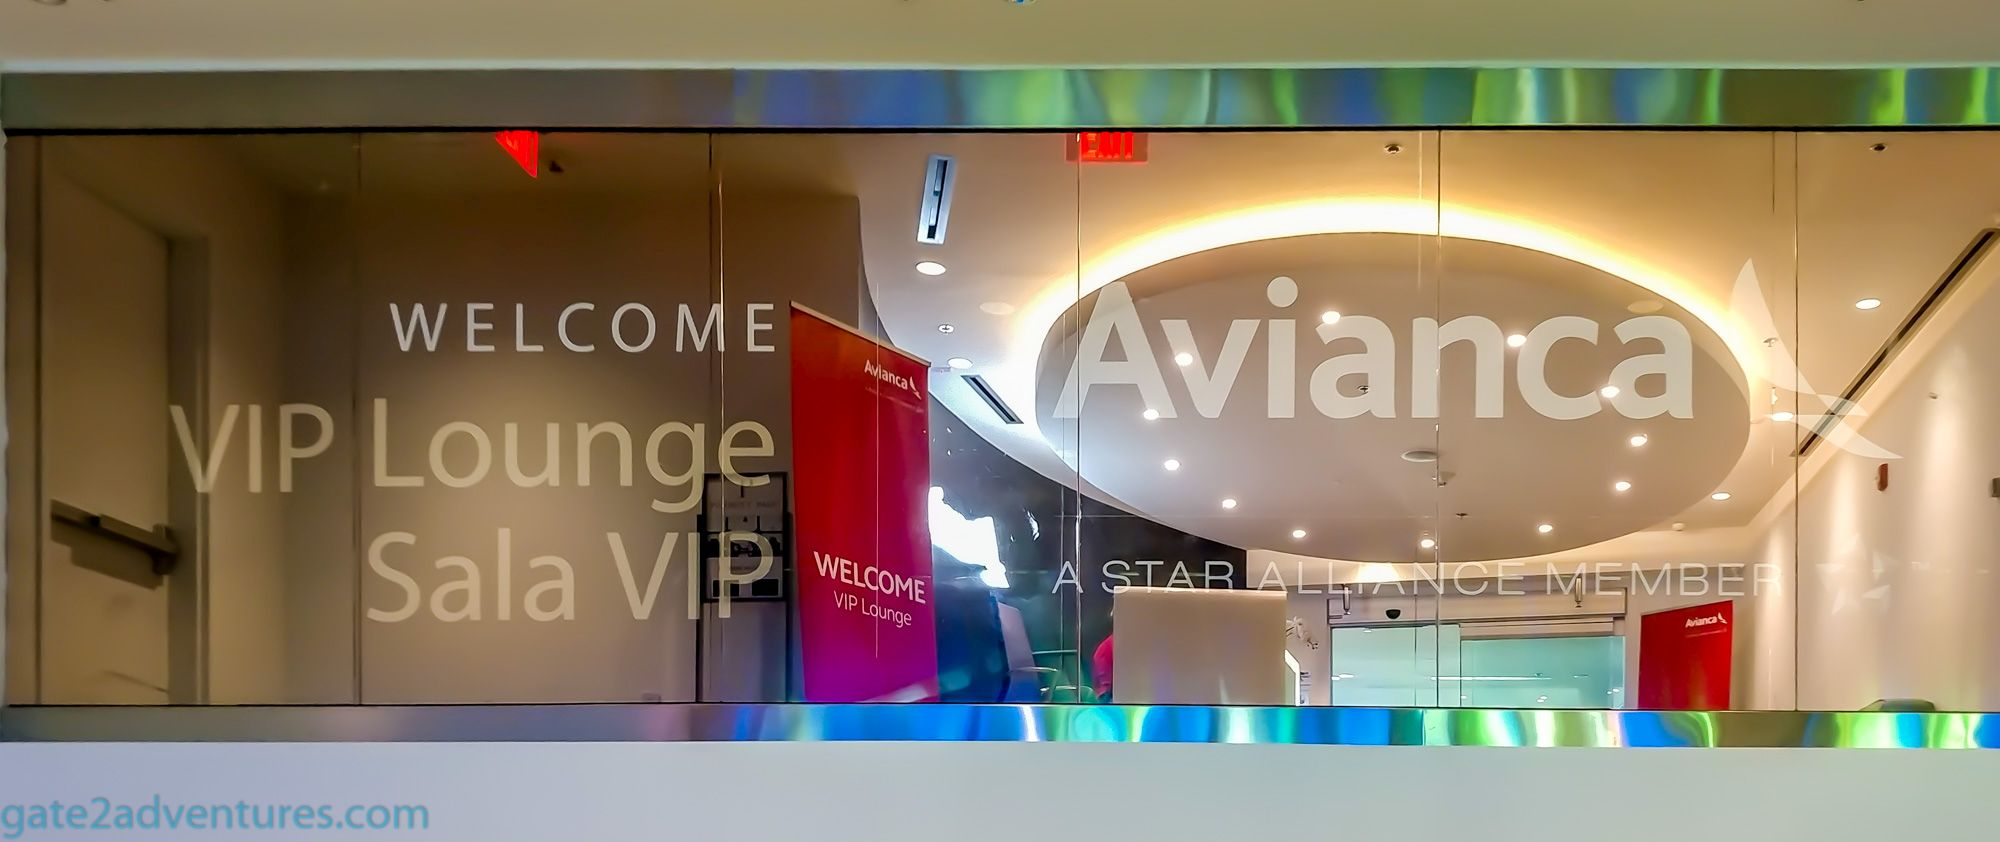 Avianca VIP Lounge Miami - South Terminal Concourse J